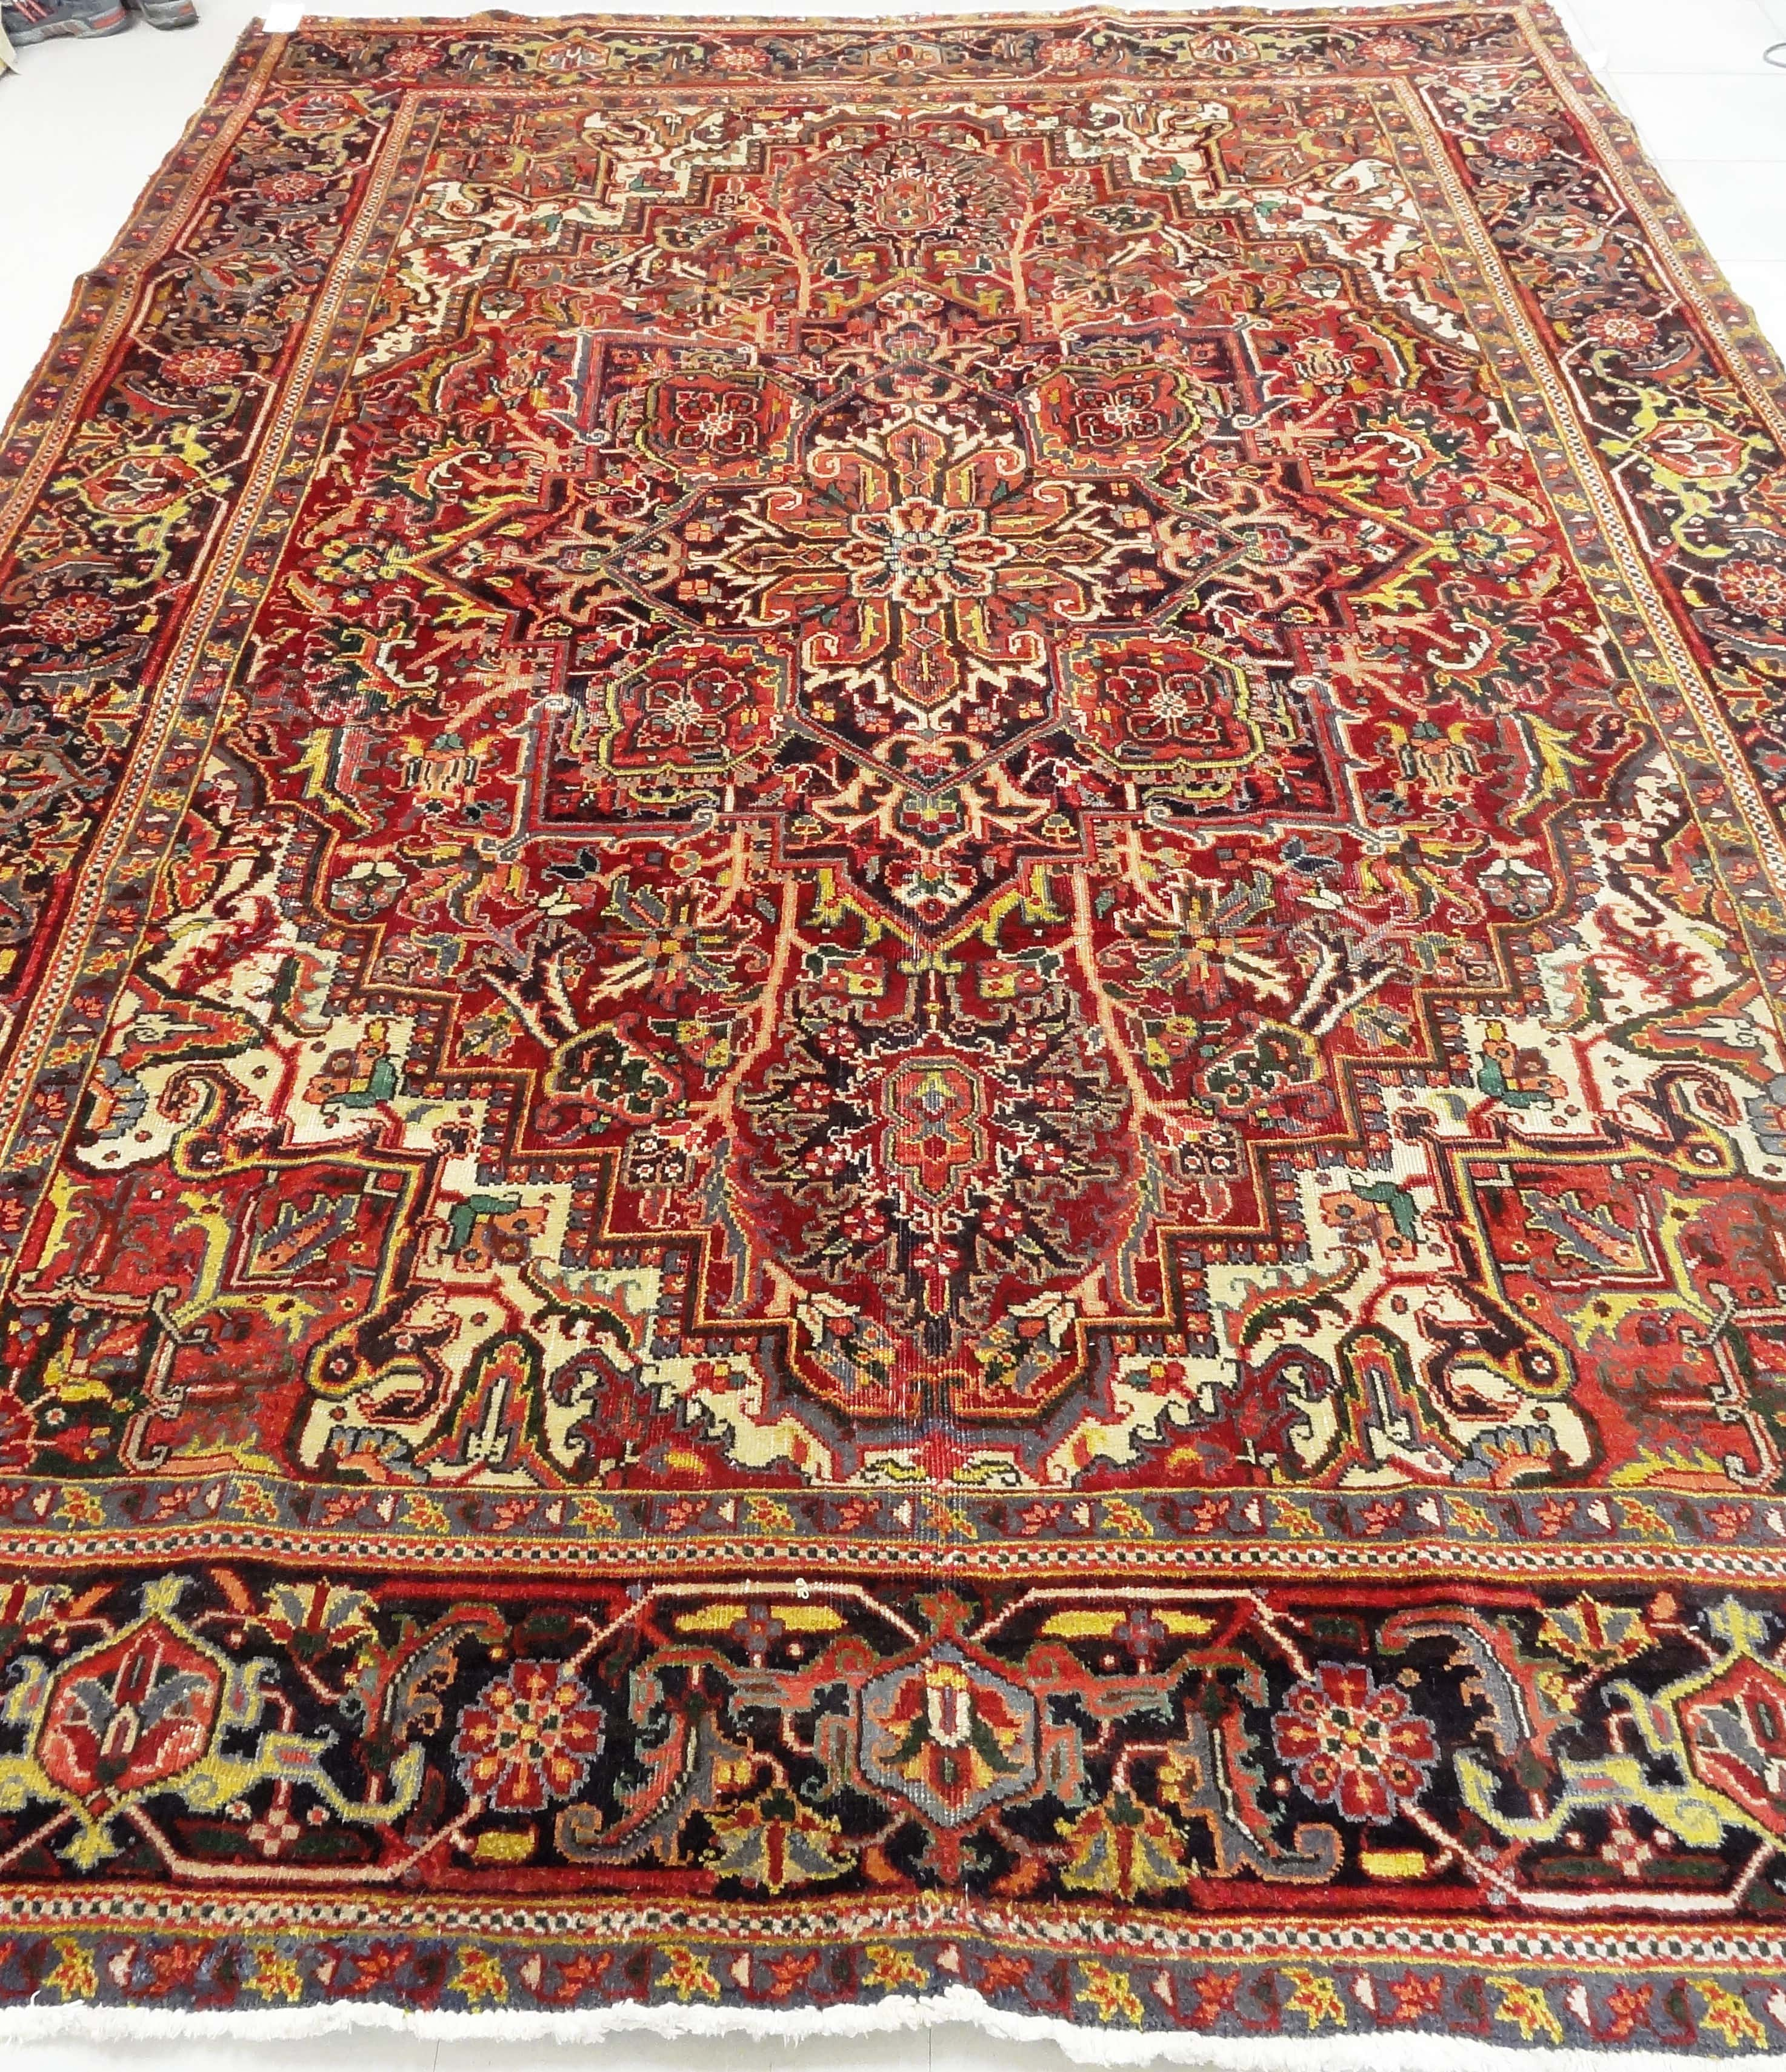 Persian Rug, Richmond Hill Rug, Toronto Rug, Markham Rug